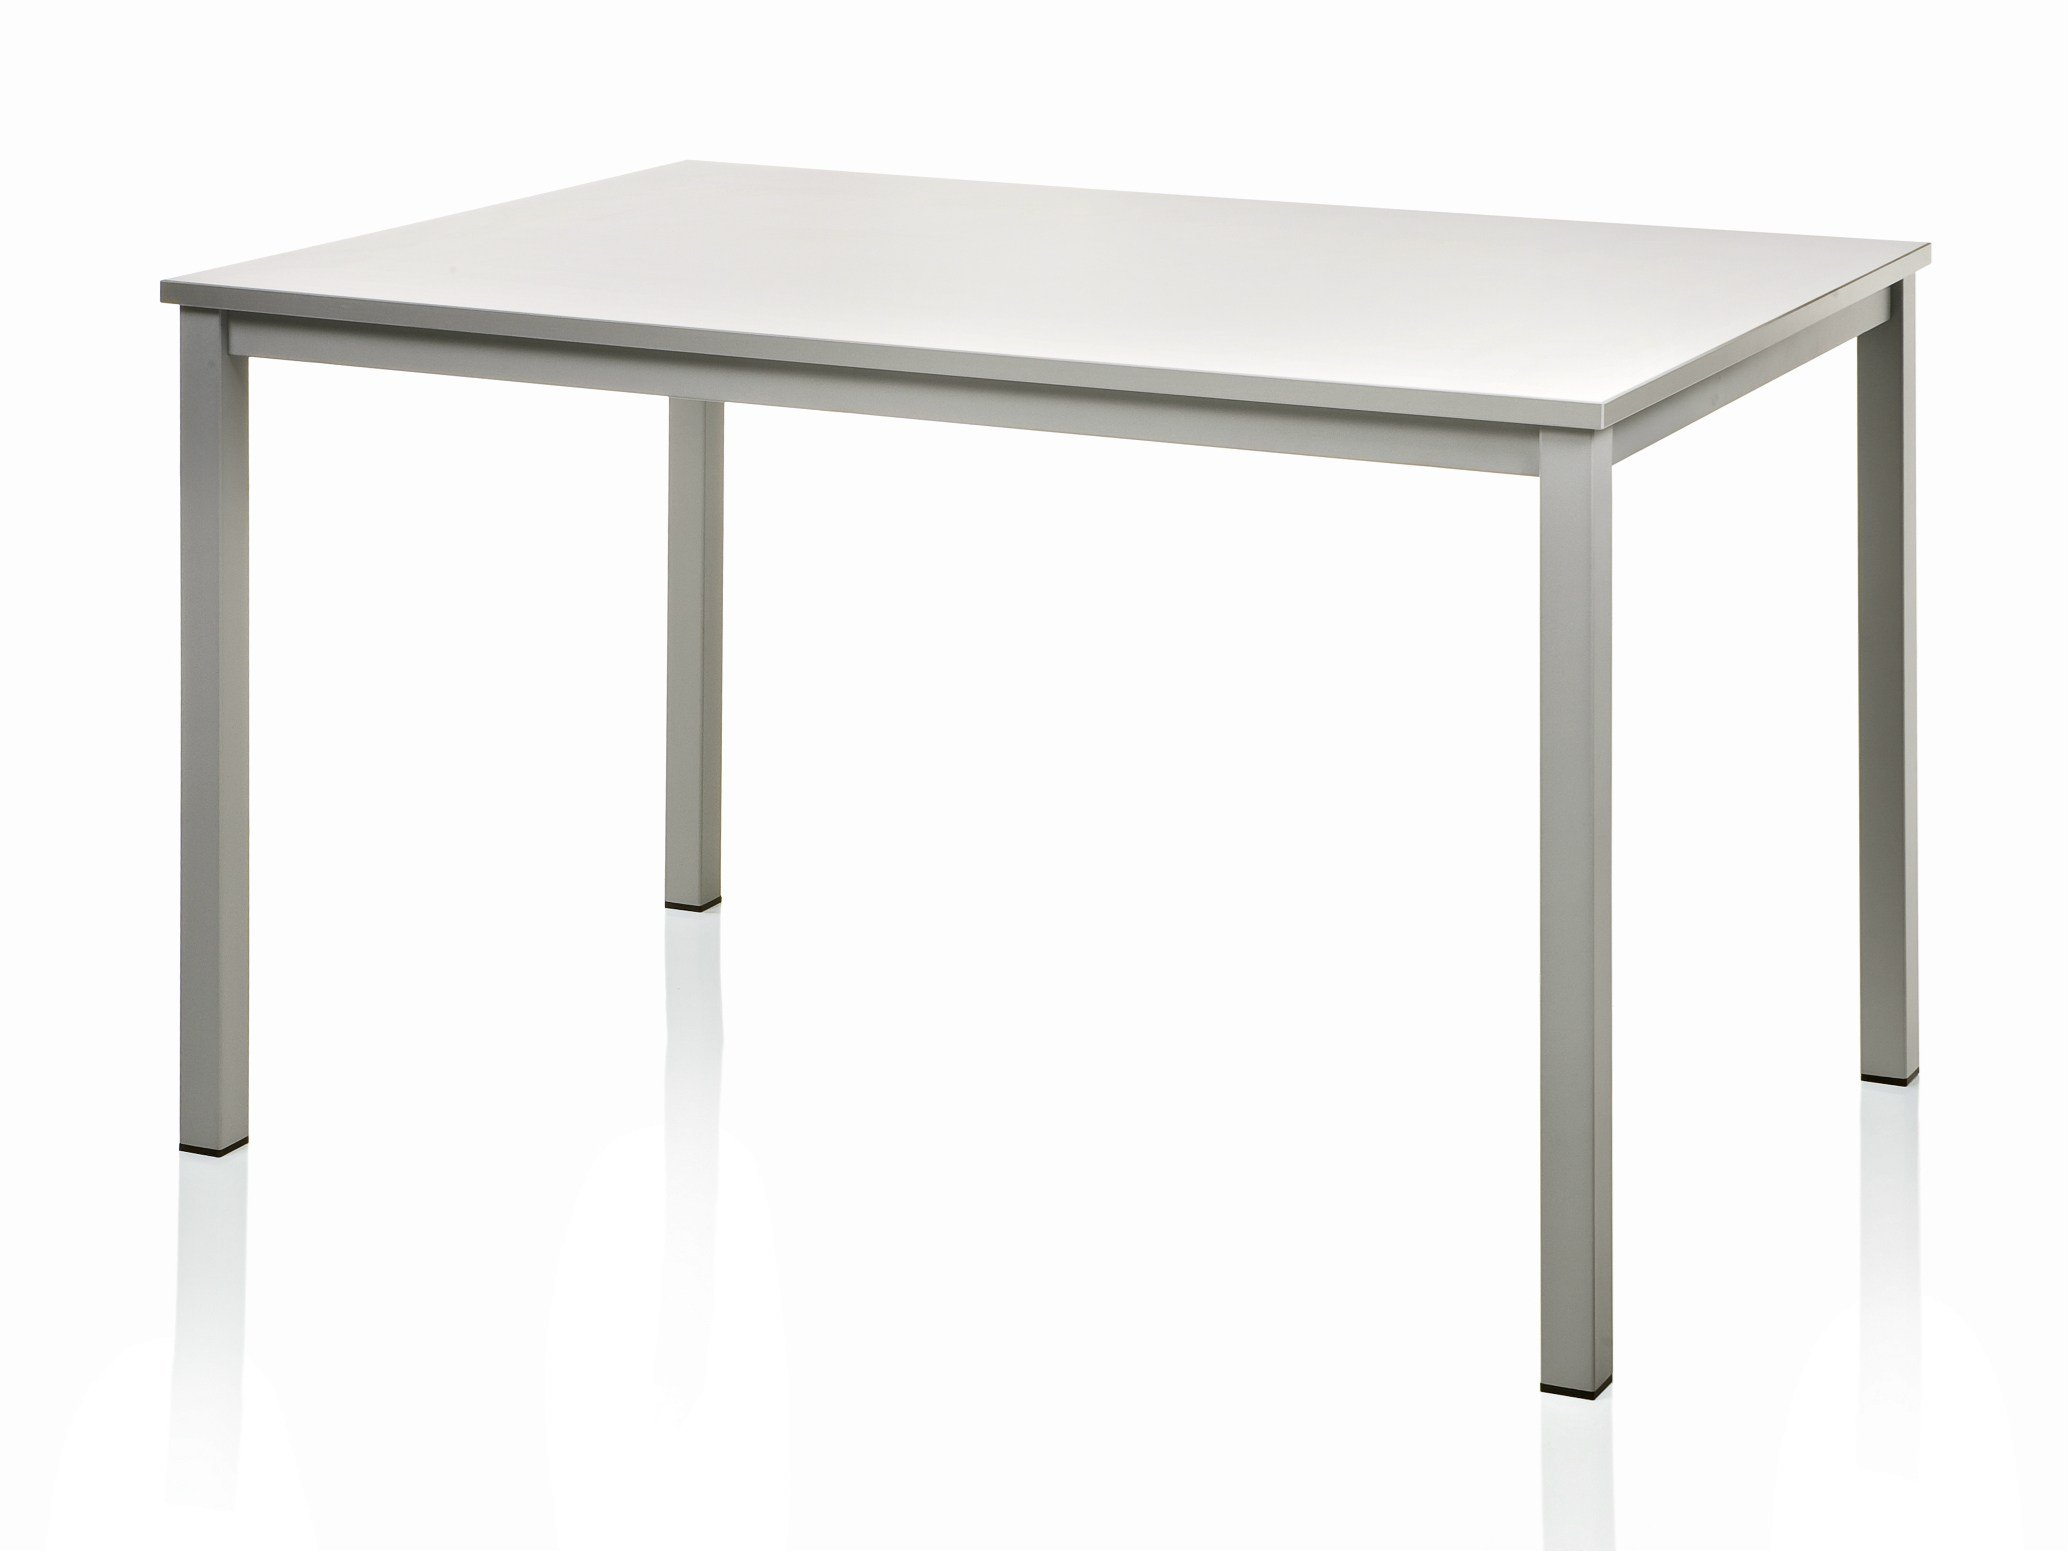 Rectangular Steel Table Metriko By Alma Design Design